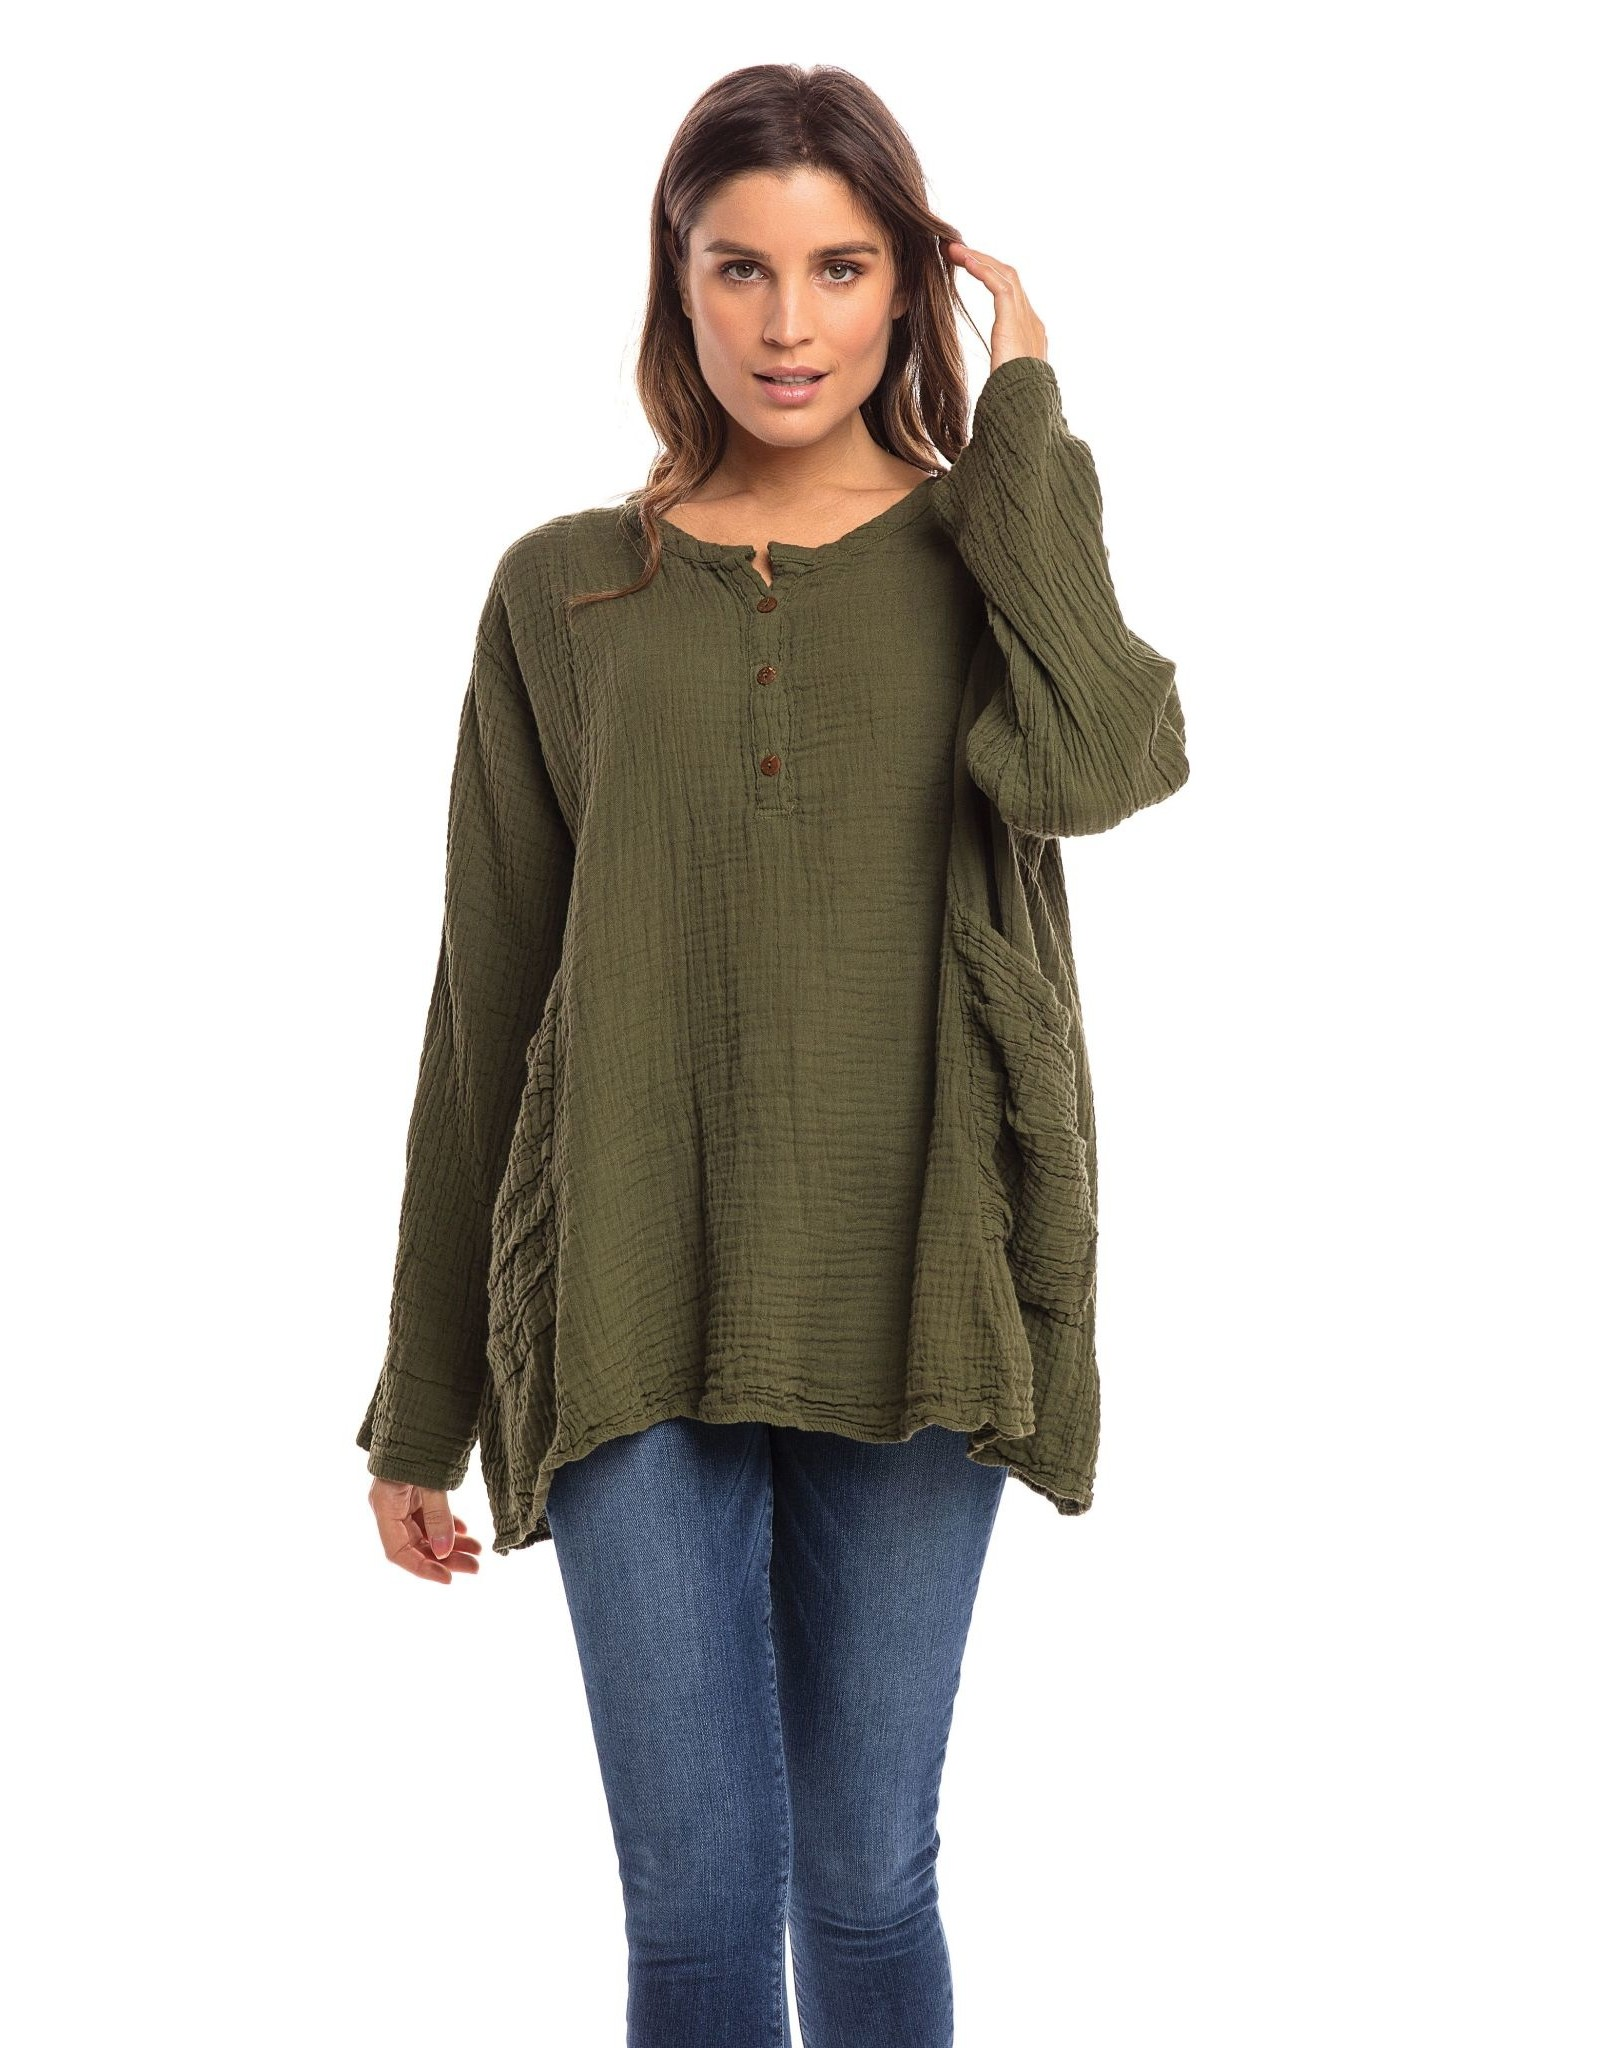 Two Pocket Double Cotton Top, Olive L/XL, Thailand